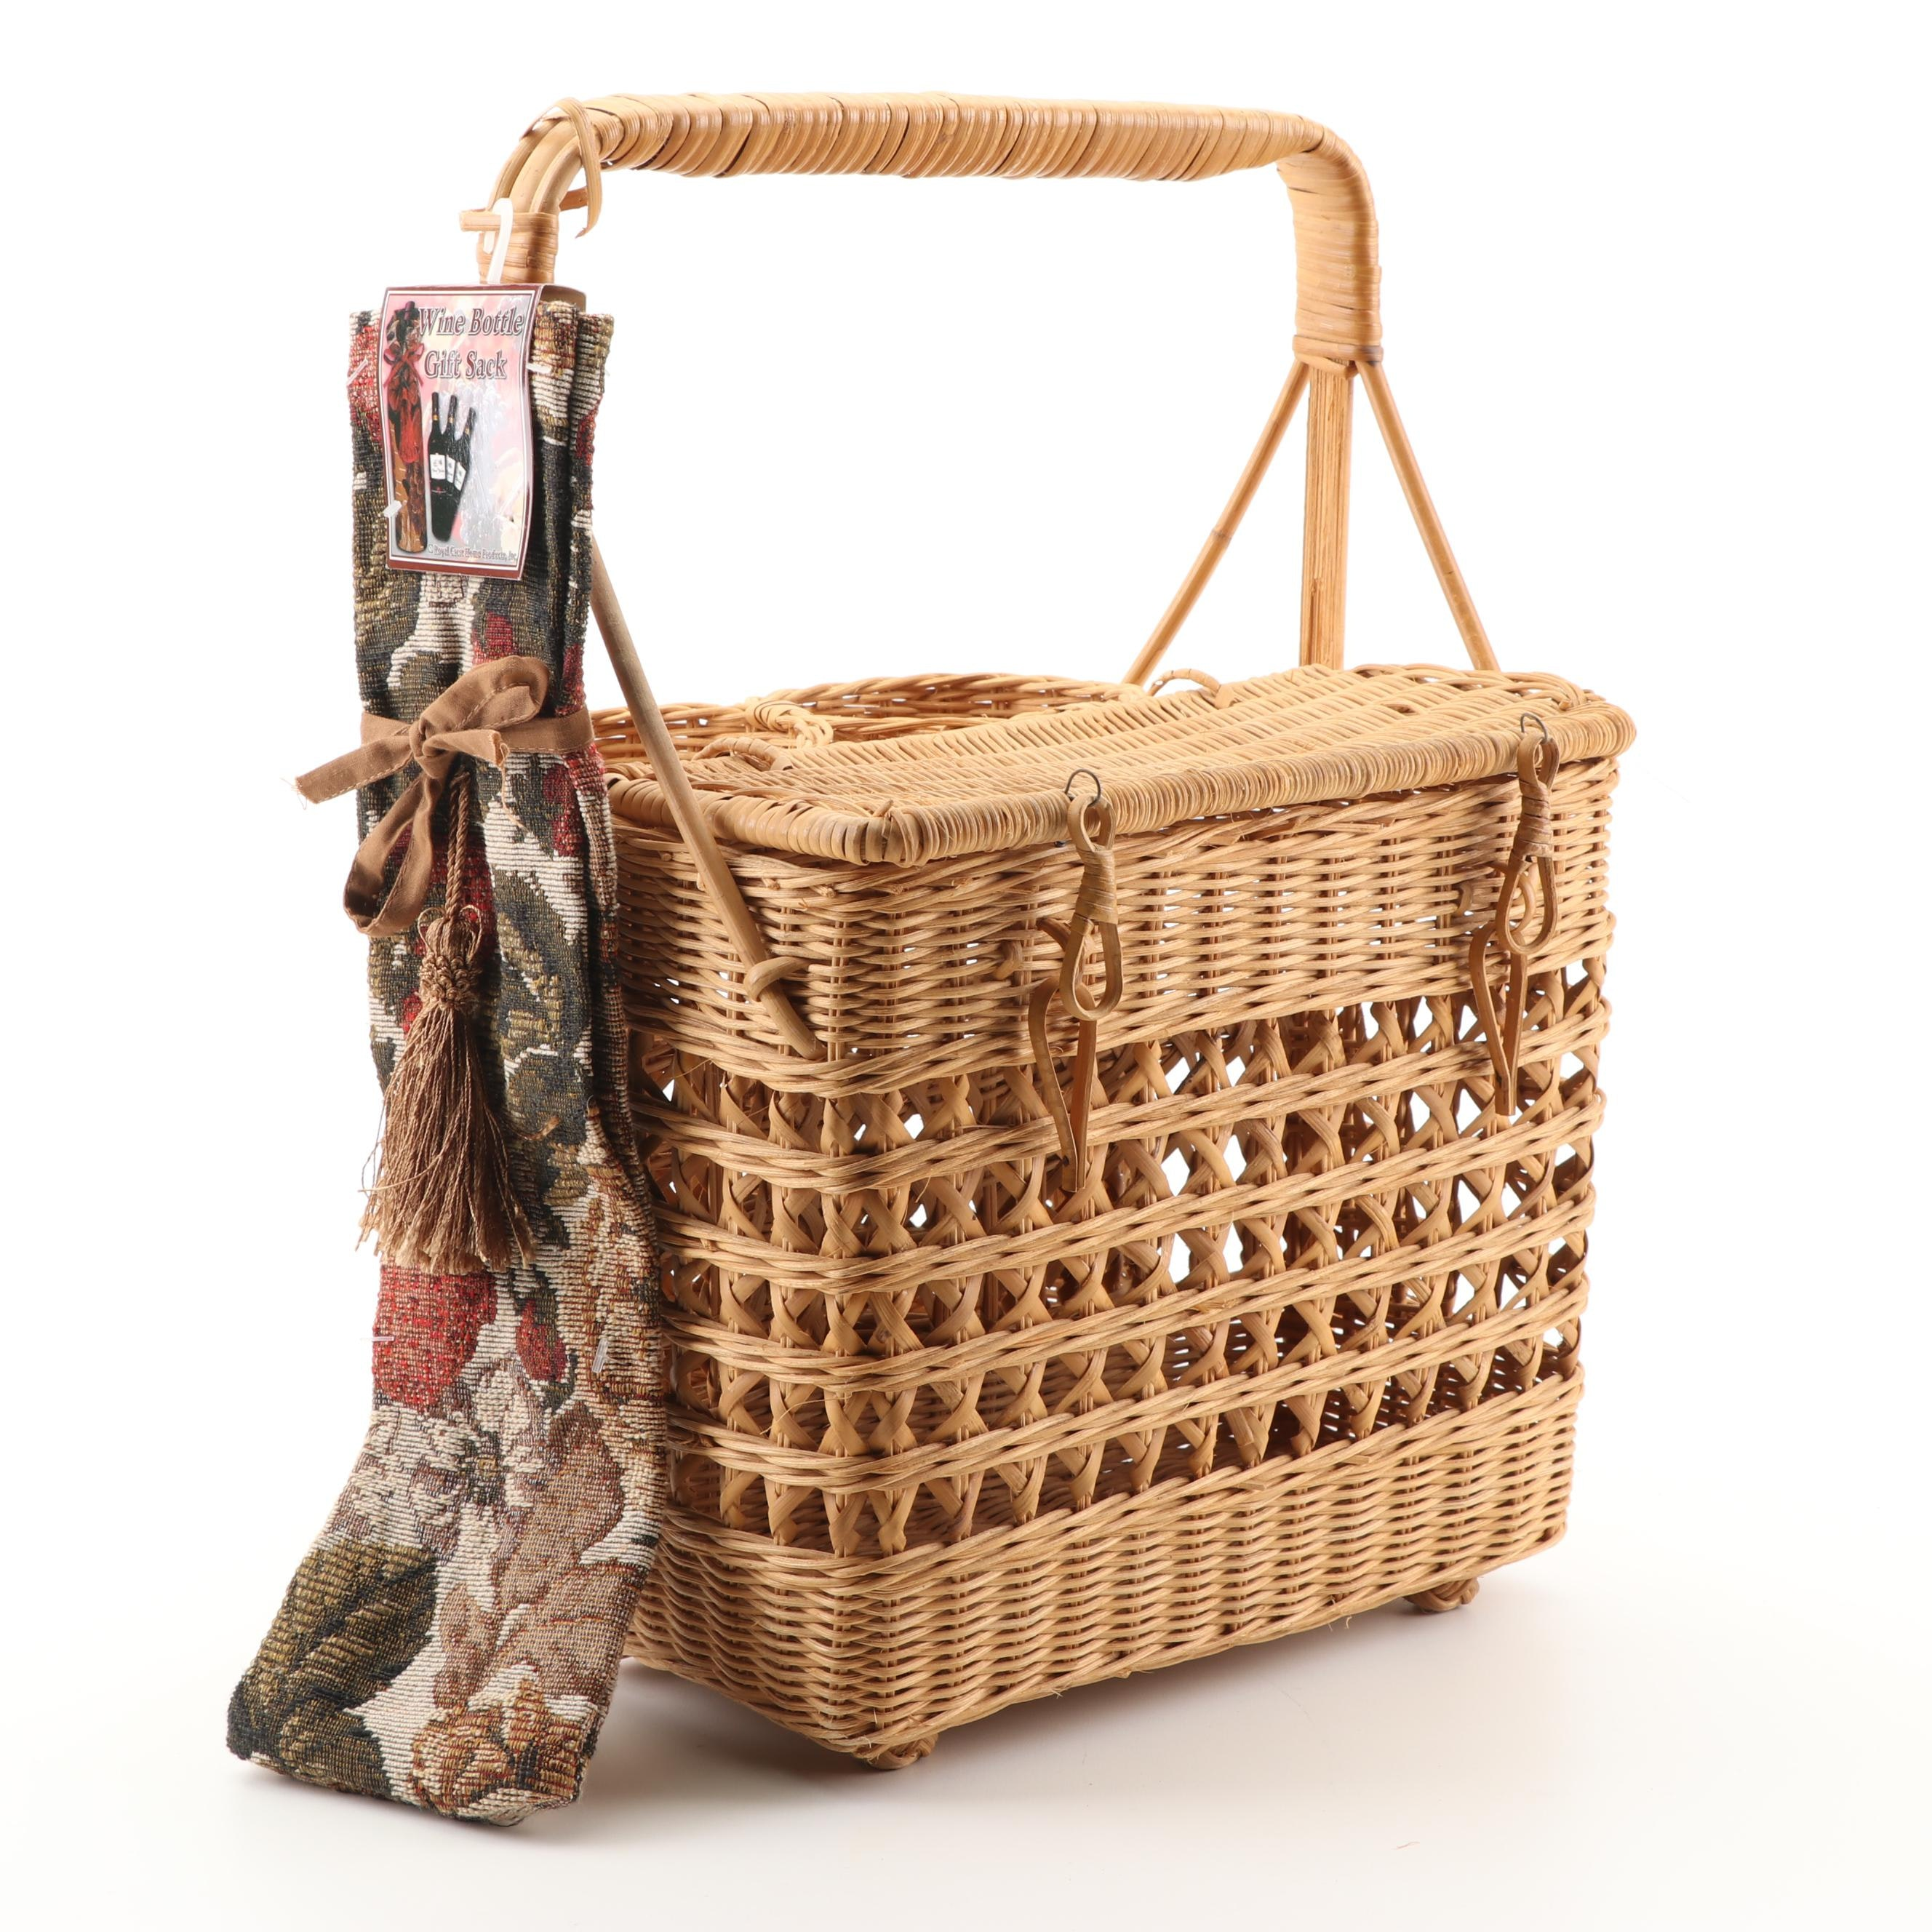 Wicker Weave Basket with Wine Bottle Gift Sack by Royal Crest Home Products